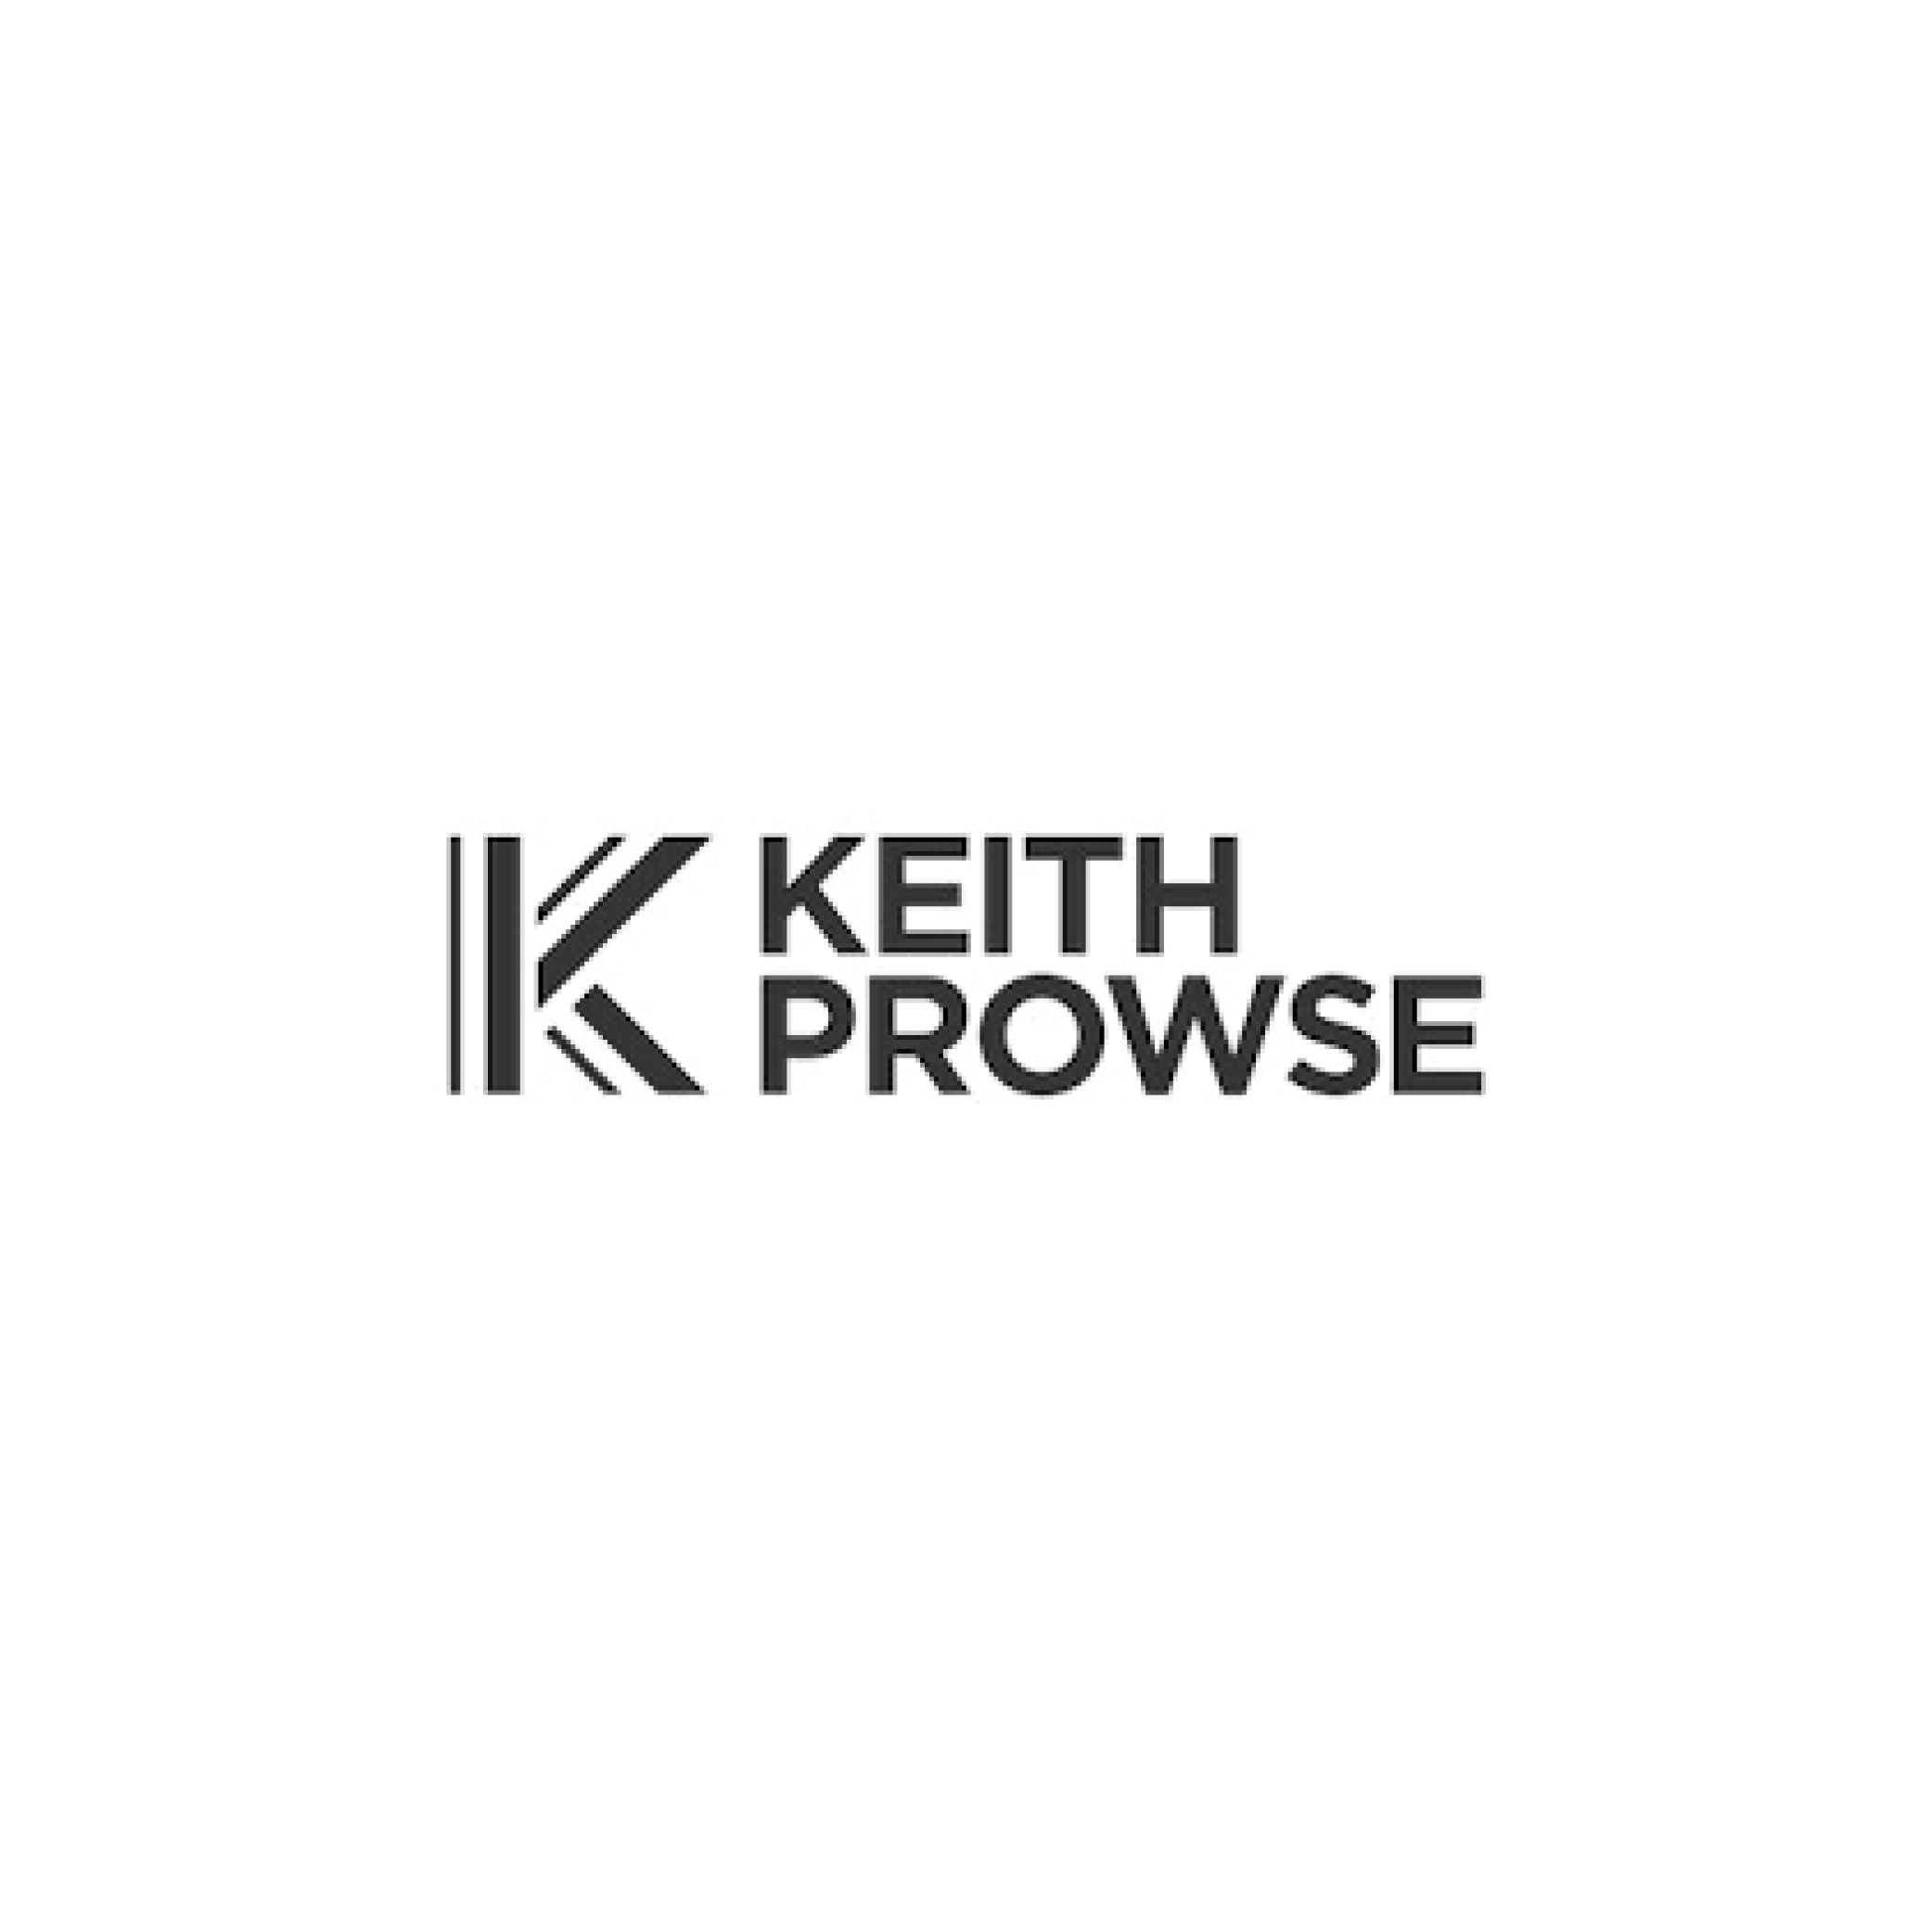 Keith prowse.png